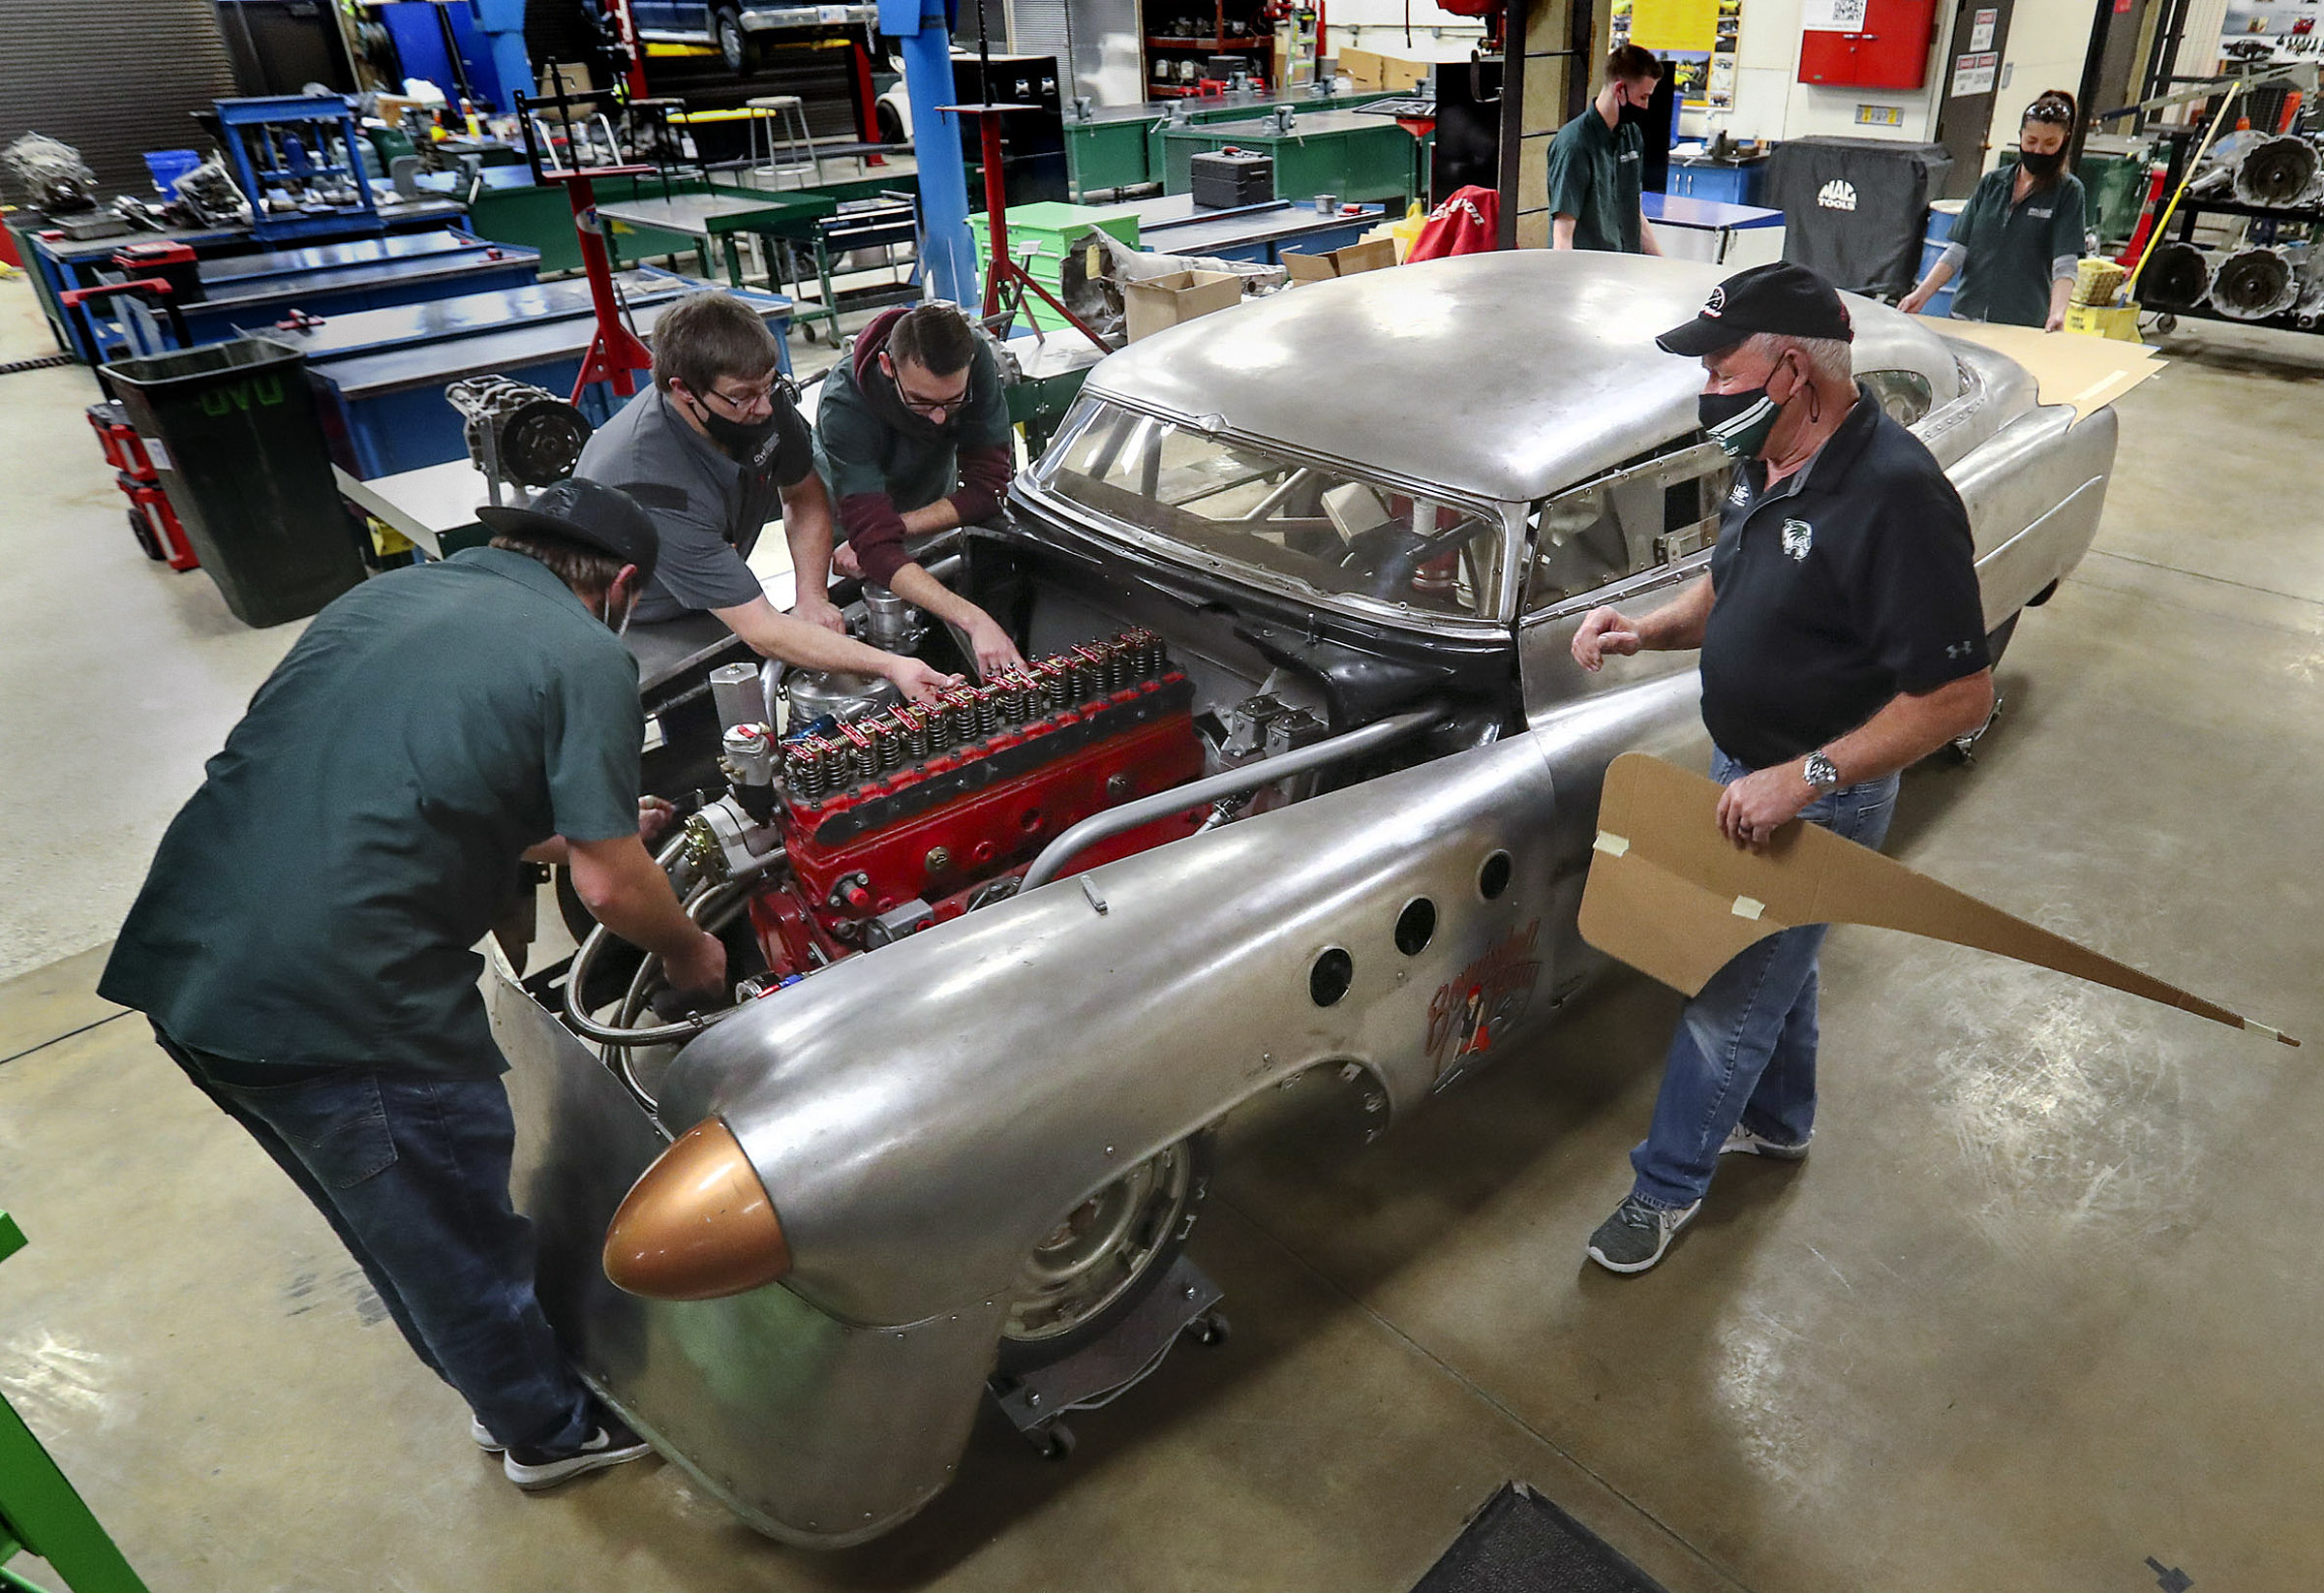 "Jeff Holm, UVU Transportation Technology professional in residence, right, and Todd Low, UVU race team director, second from left, work with UVU automotive students Jordan Olsen, left, Anderson Workman, James Spackman and Hadley Tibbitts, right, as they work on ""Bombshell Betty,"" the iconic 1952 Buick that broke six land speed world records at the Bonneville Speedway in Utah, at the Sparks Automotive building on the UVU campus in Orem on Wednesday, Nov. 18, 2020. The team has updated and reengineered the vehicle to break the 200 mph mark."